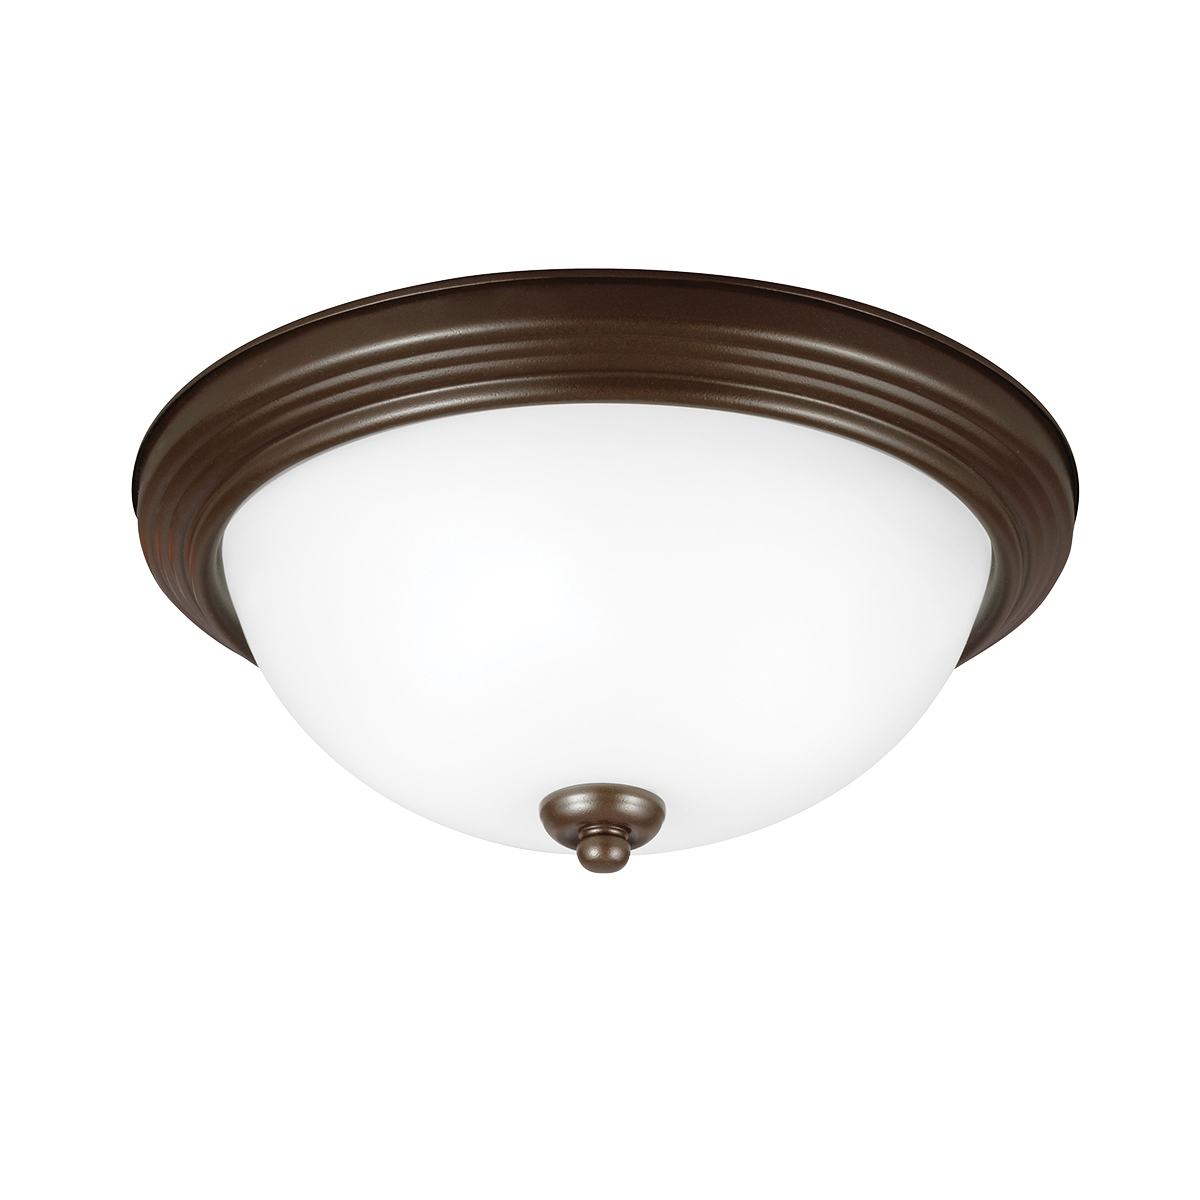 Sea Gull 79163BLE-827 Signature 1 Light 11 inch Bell Metal Bronze Flush Mount Ceiling Light in Satin Etched Glass photo